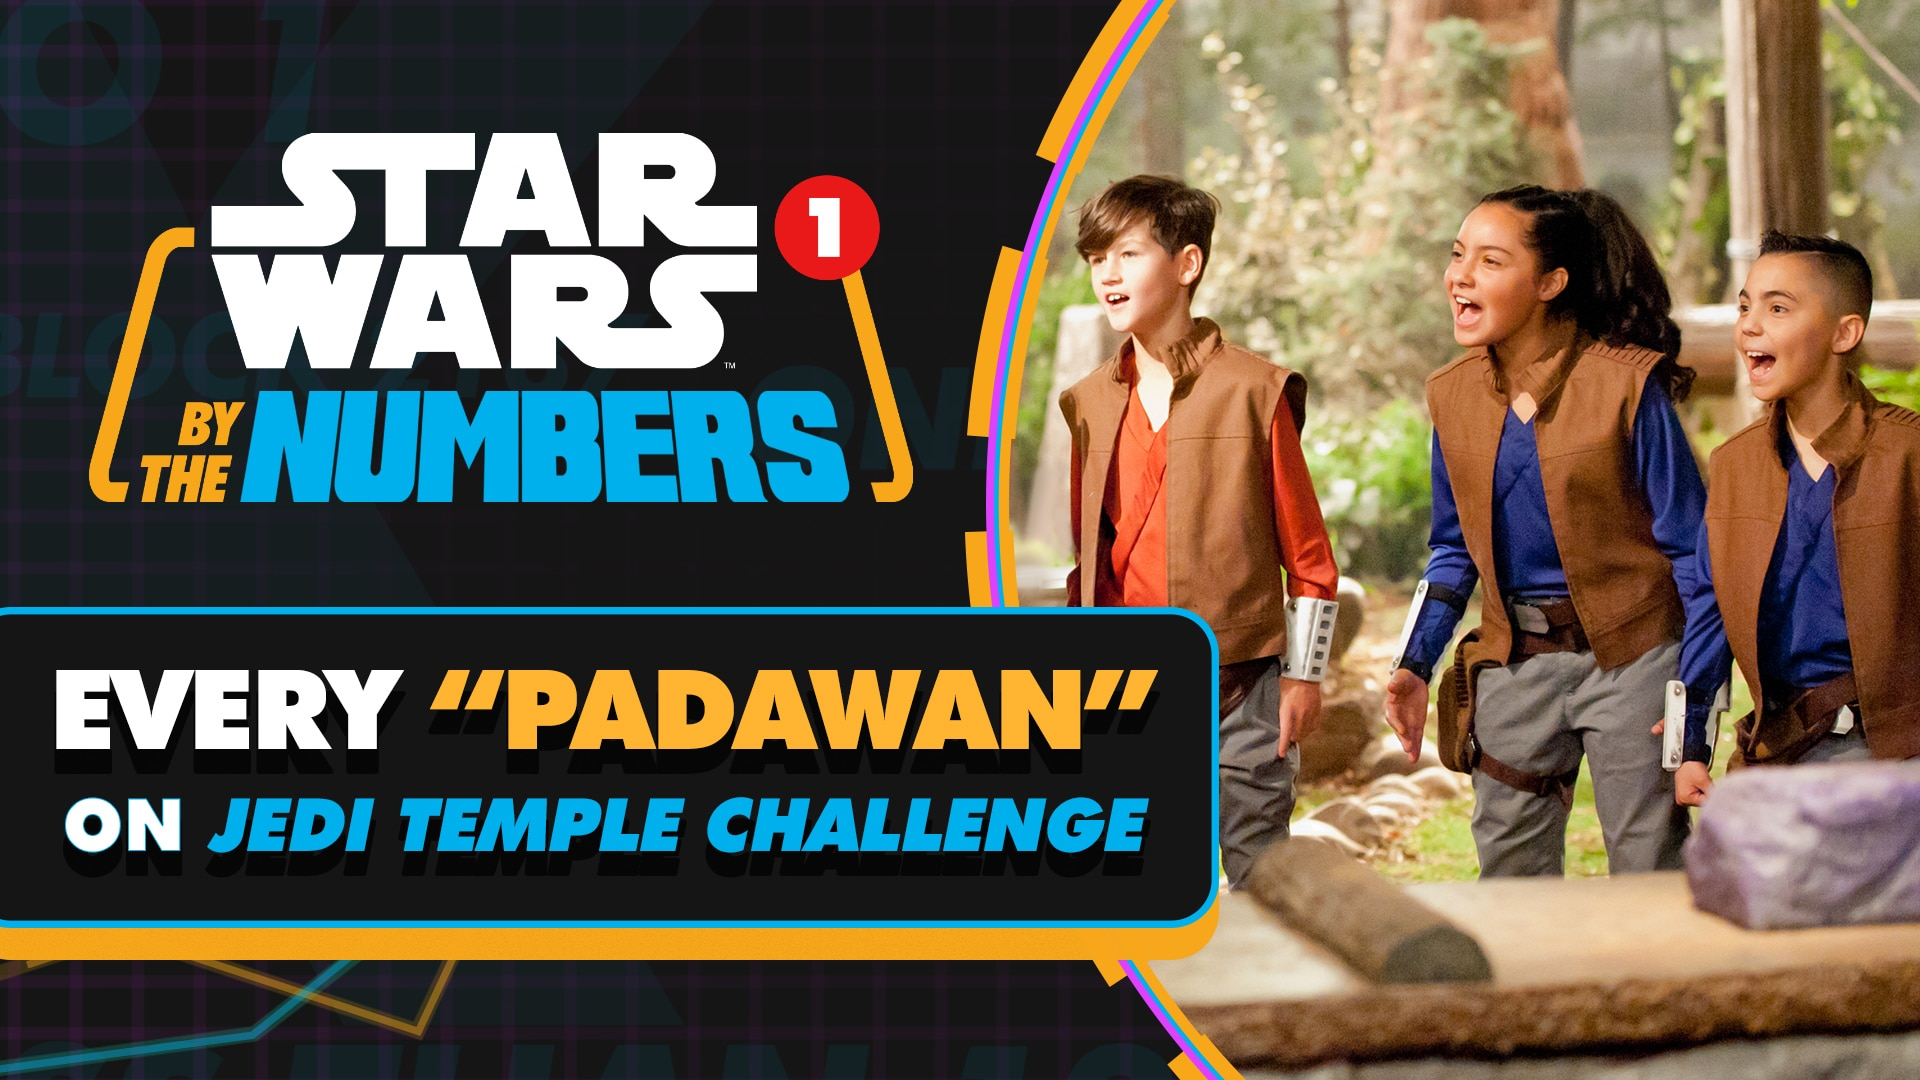 Every 'Padawan' on Jedi Temple Challenge | Star Wars By the Numbers